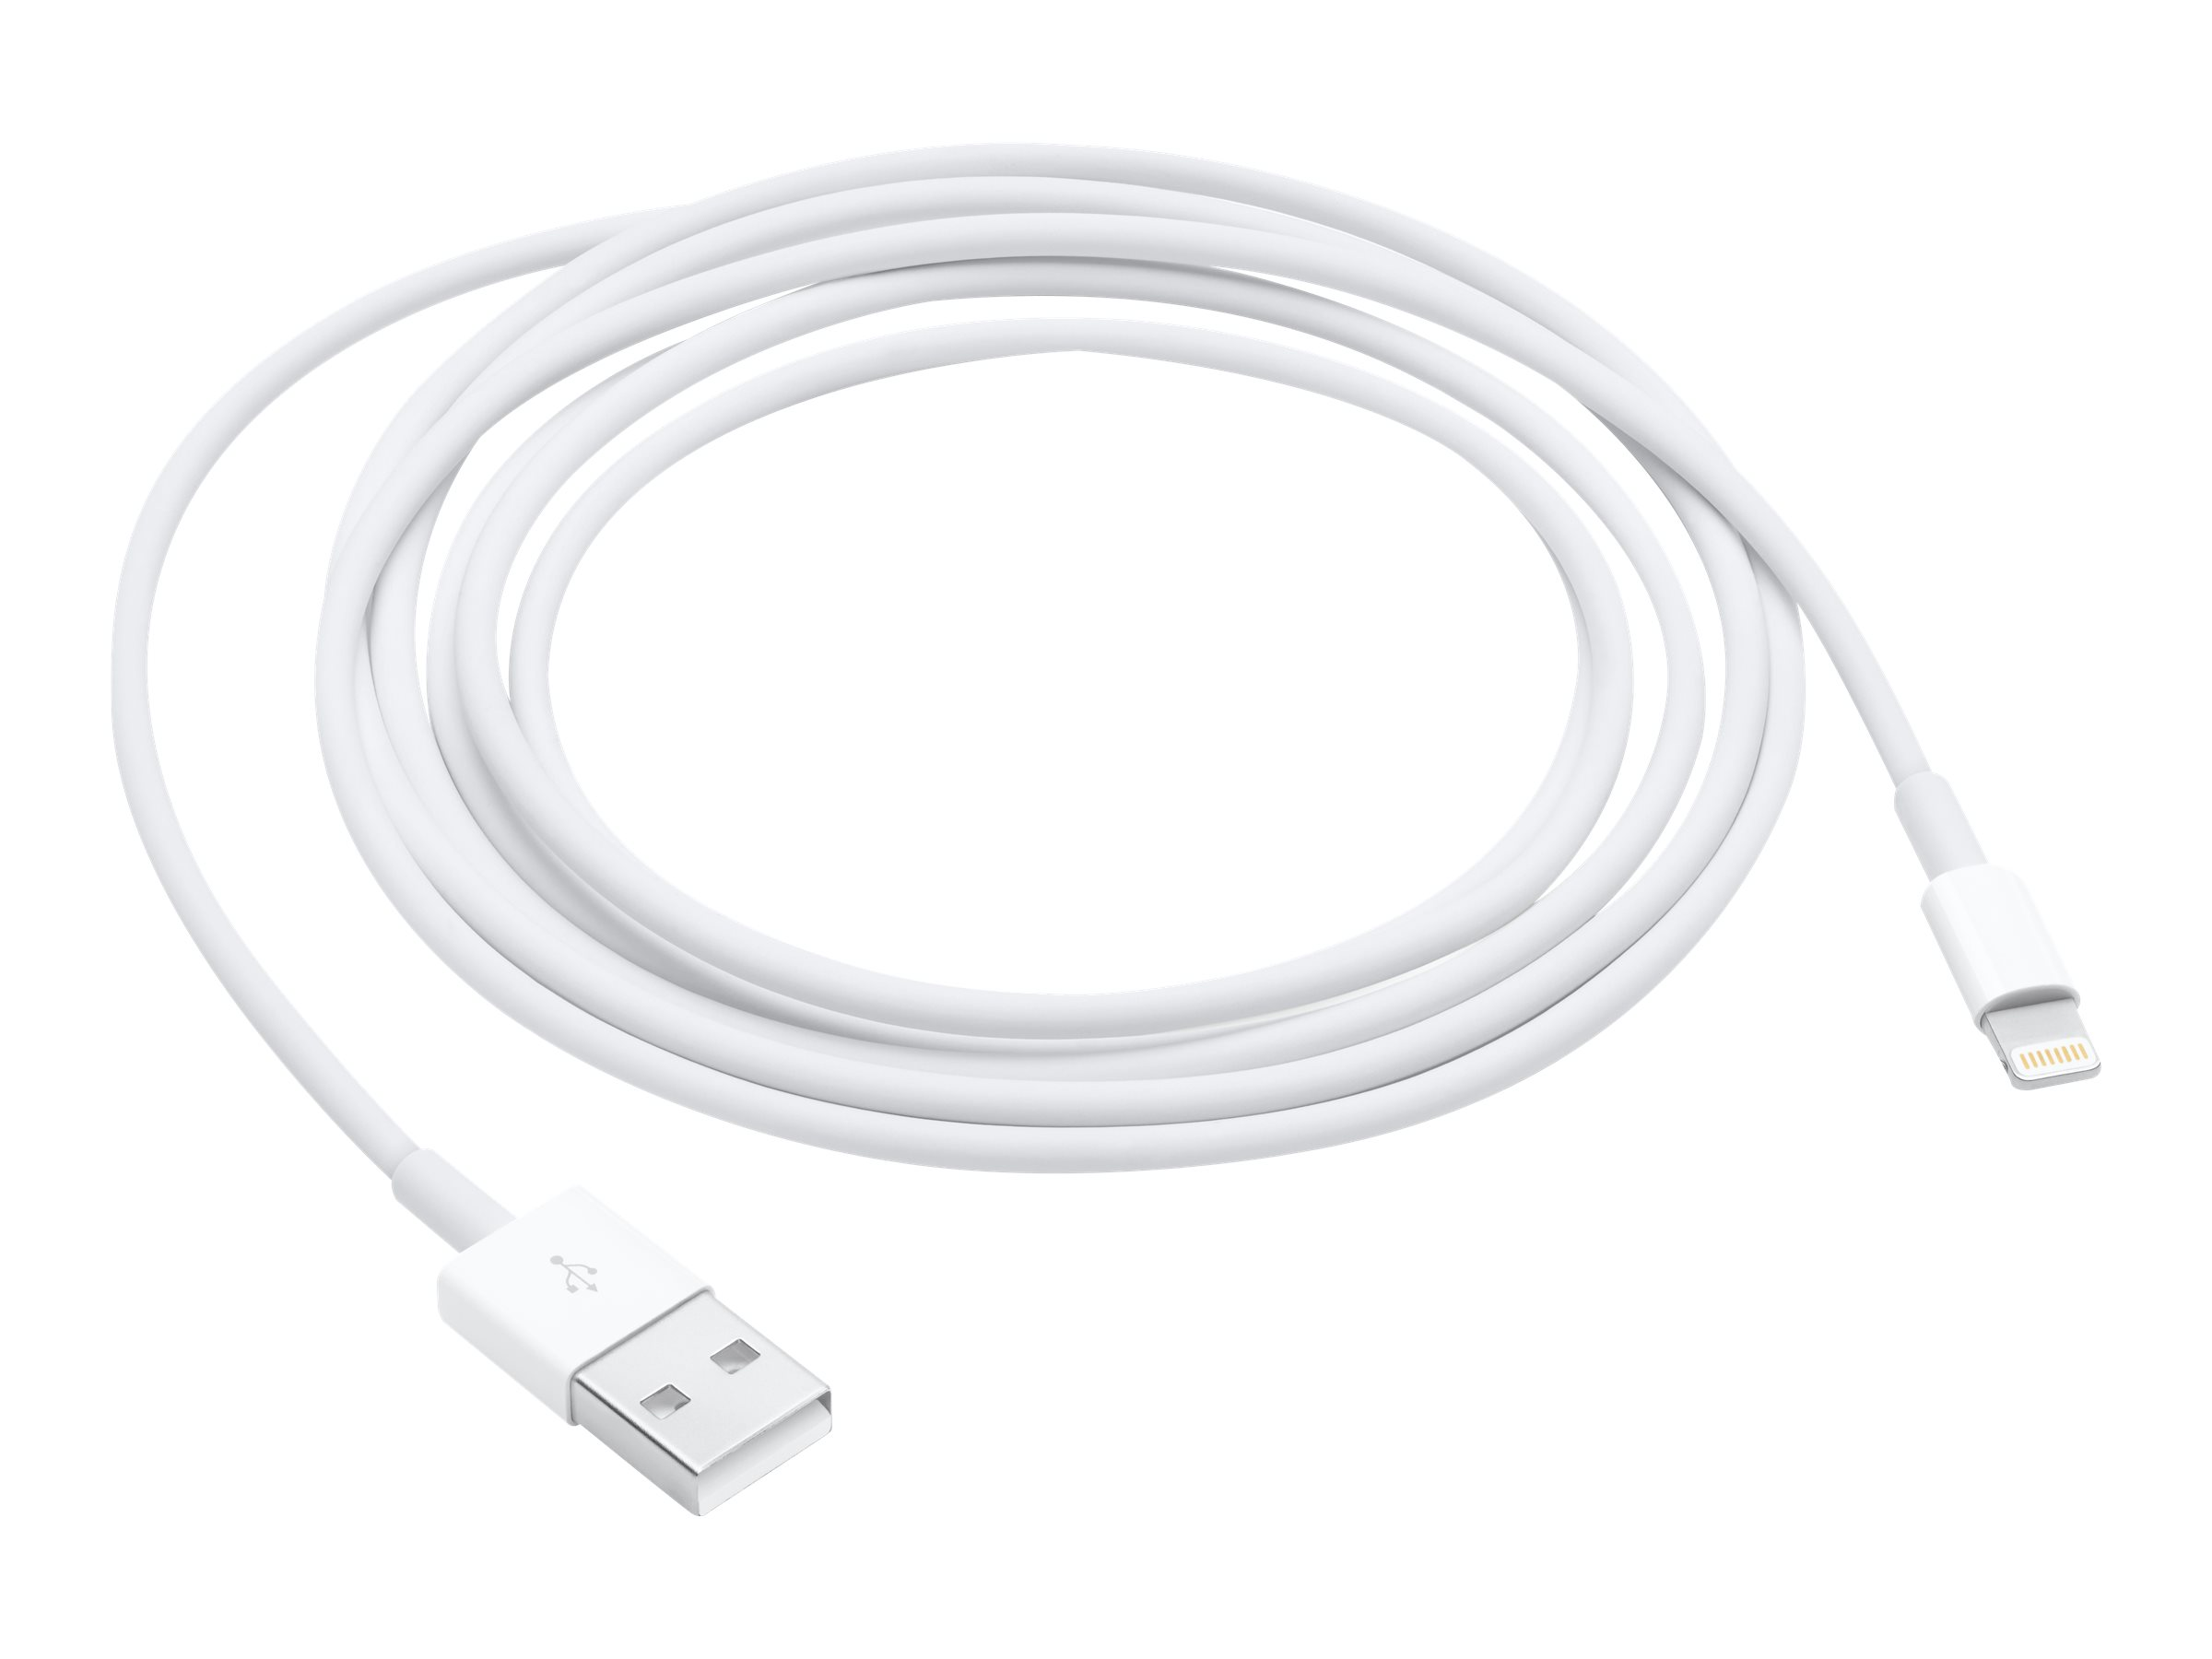 Apple Lightning cable - Lightning / USB 2.0 - 2 m